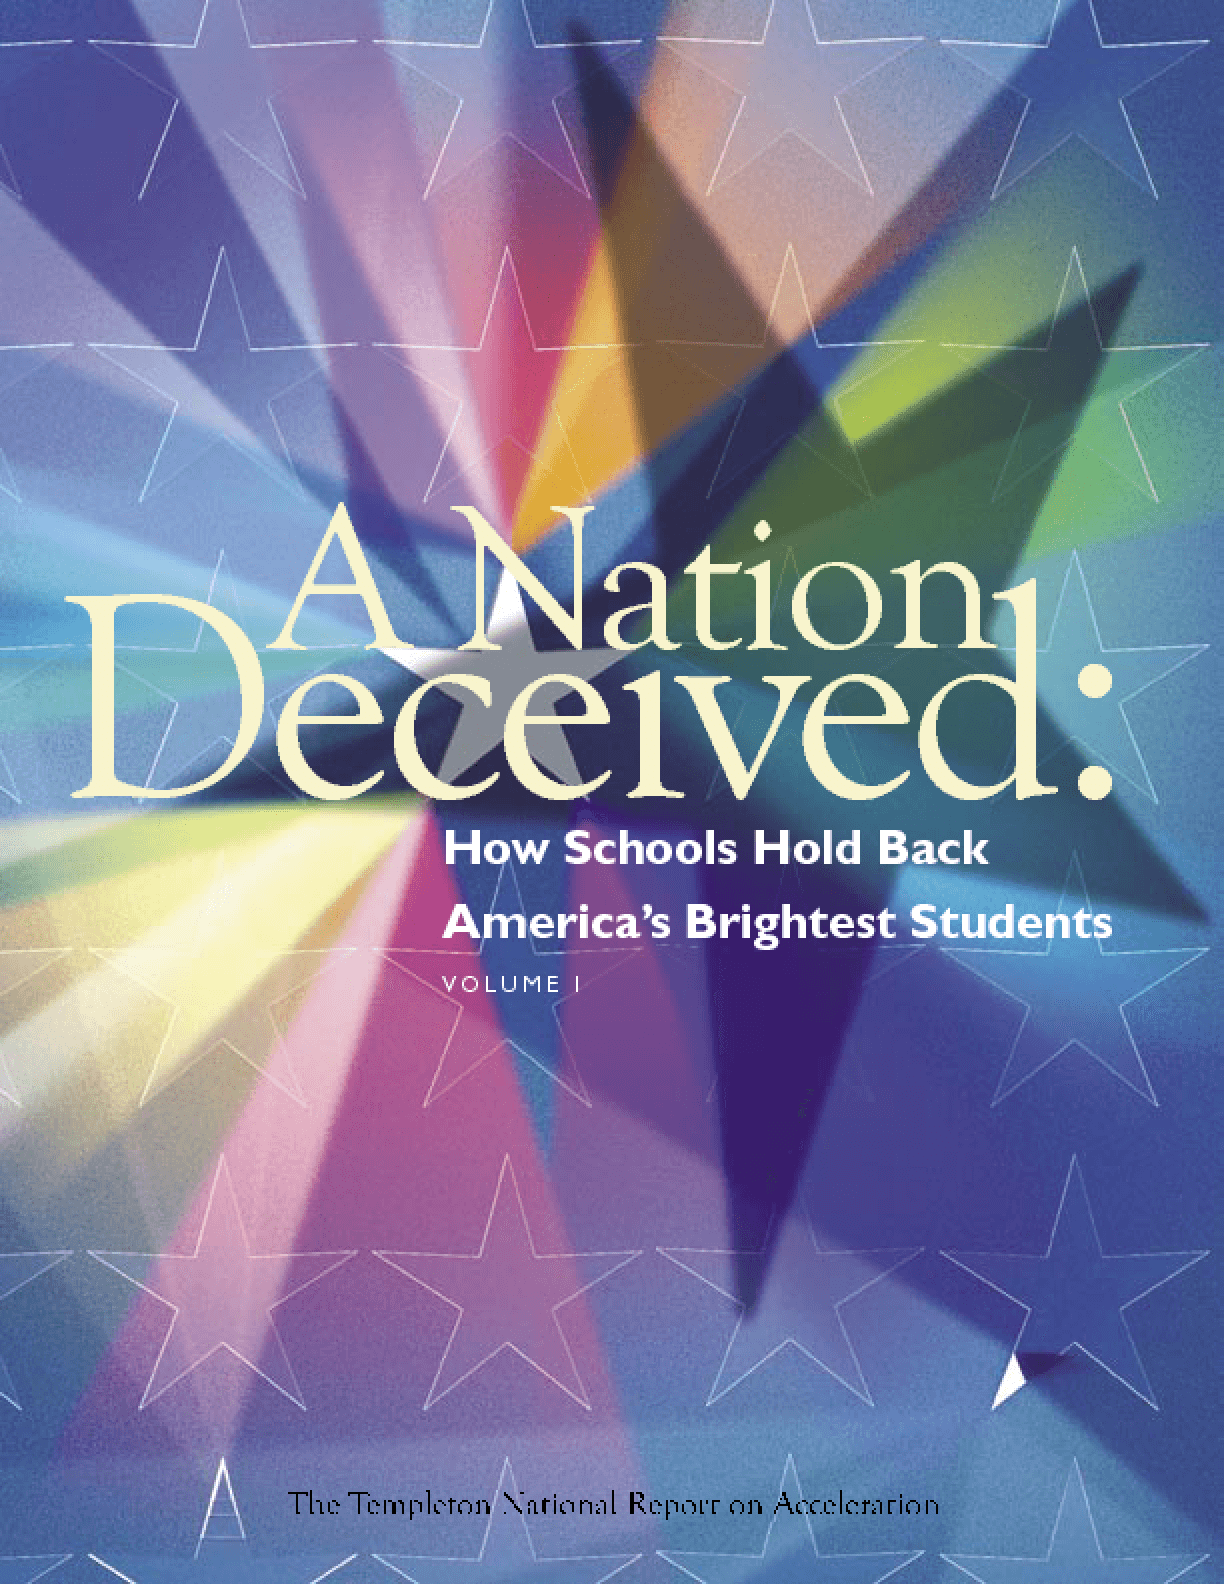 A Nation Deceived: How Schools Hold Back America's Brightest Students, Volume I